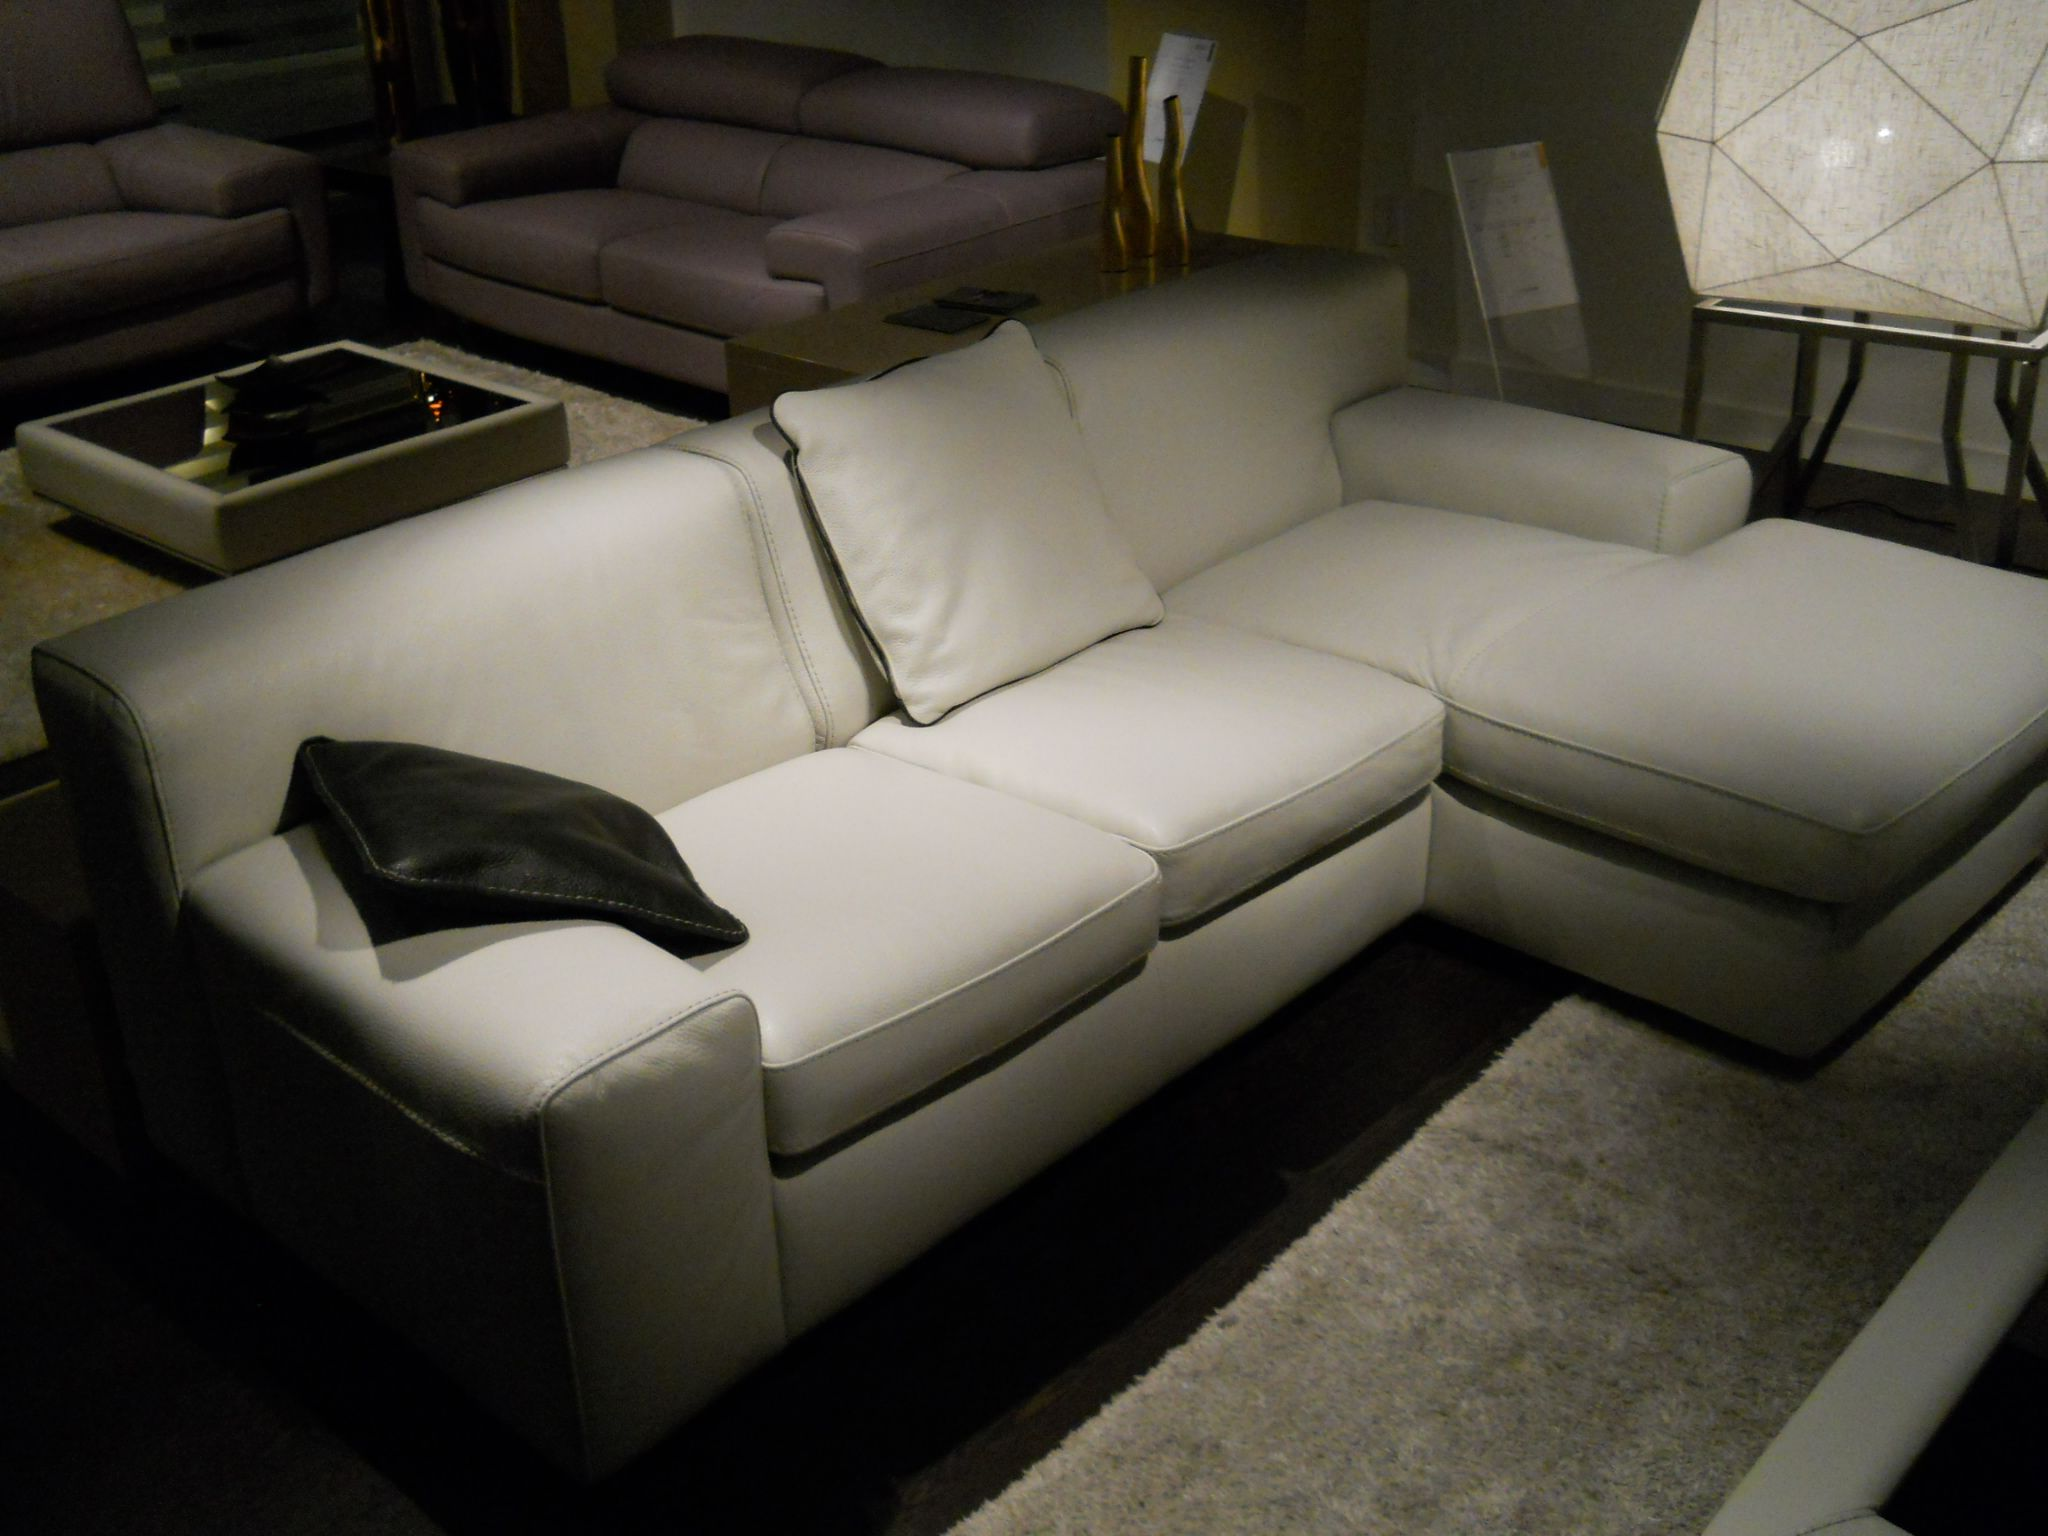 Condo Couches Off White Condo Size Leather Sectional Sofa Made In Italy